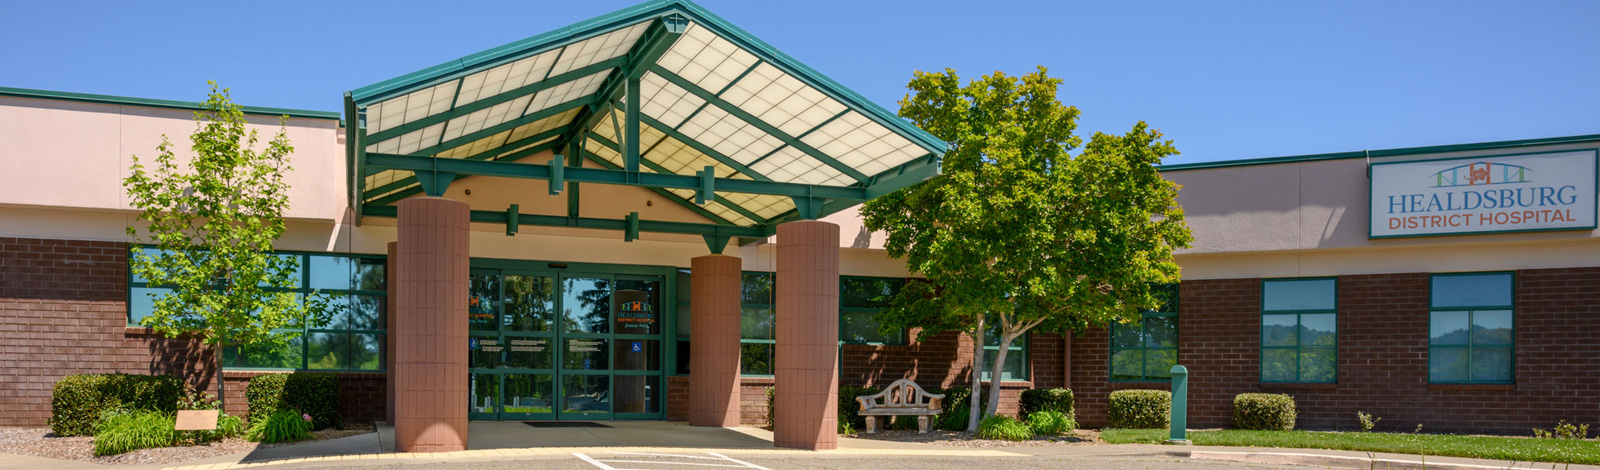 Healdsburg District Hospital Entrance